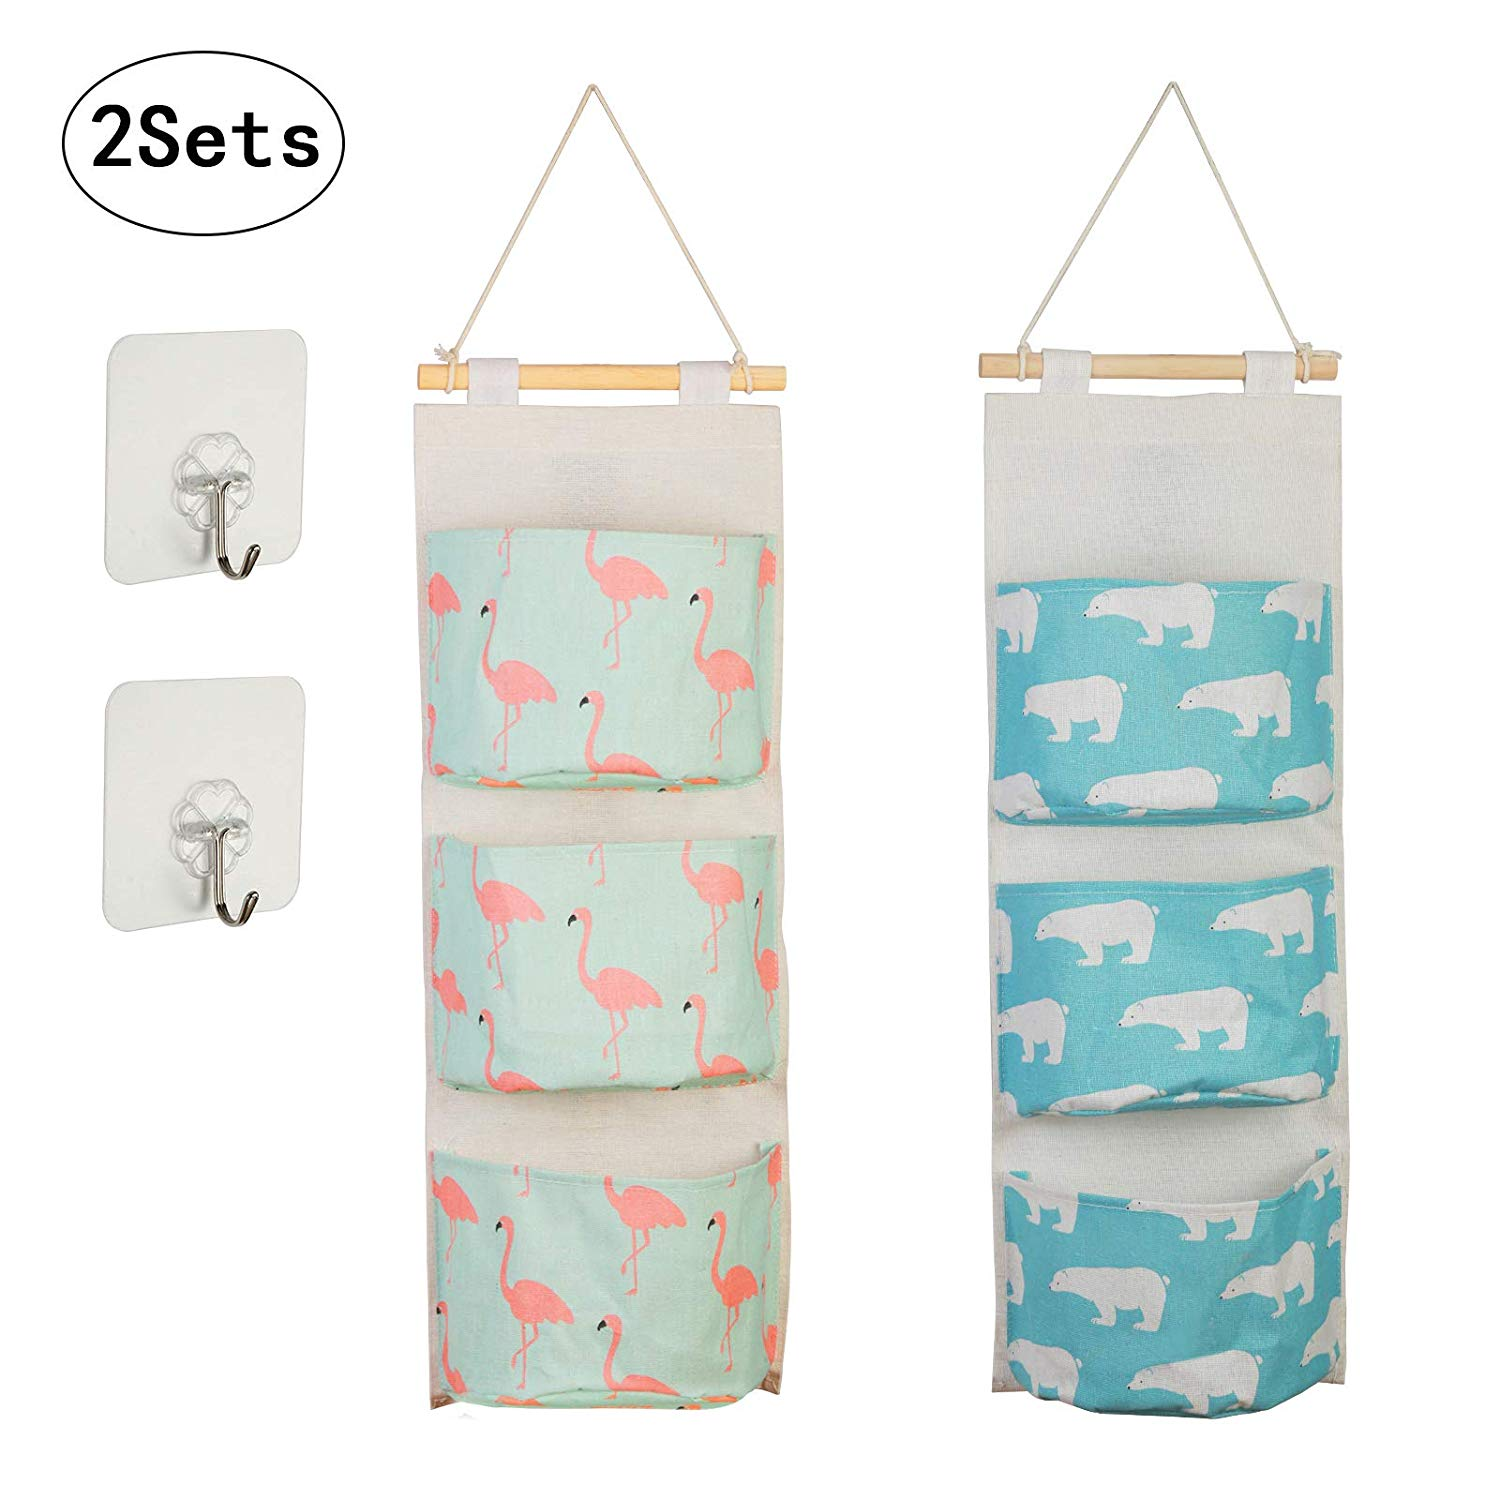 METABLE 2pcs Cartoon Pattern Hanging Storage Bag Waterproof Cotton Closet Wall Door Storage with 3 Pockets and 2 Self Adhesive in Hanging Organizers from Home Garden